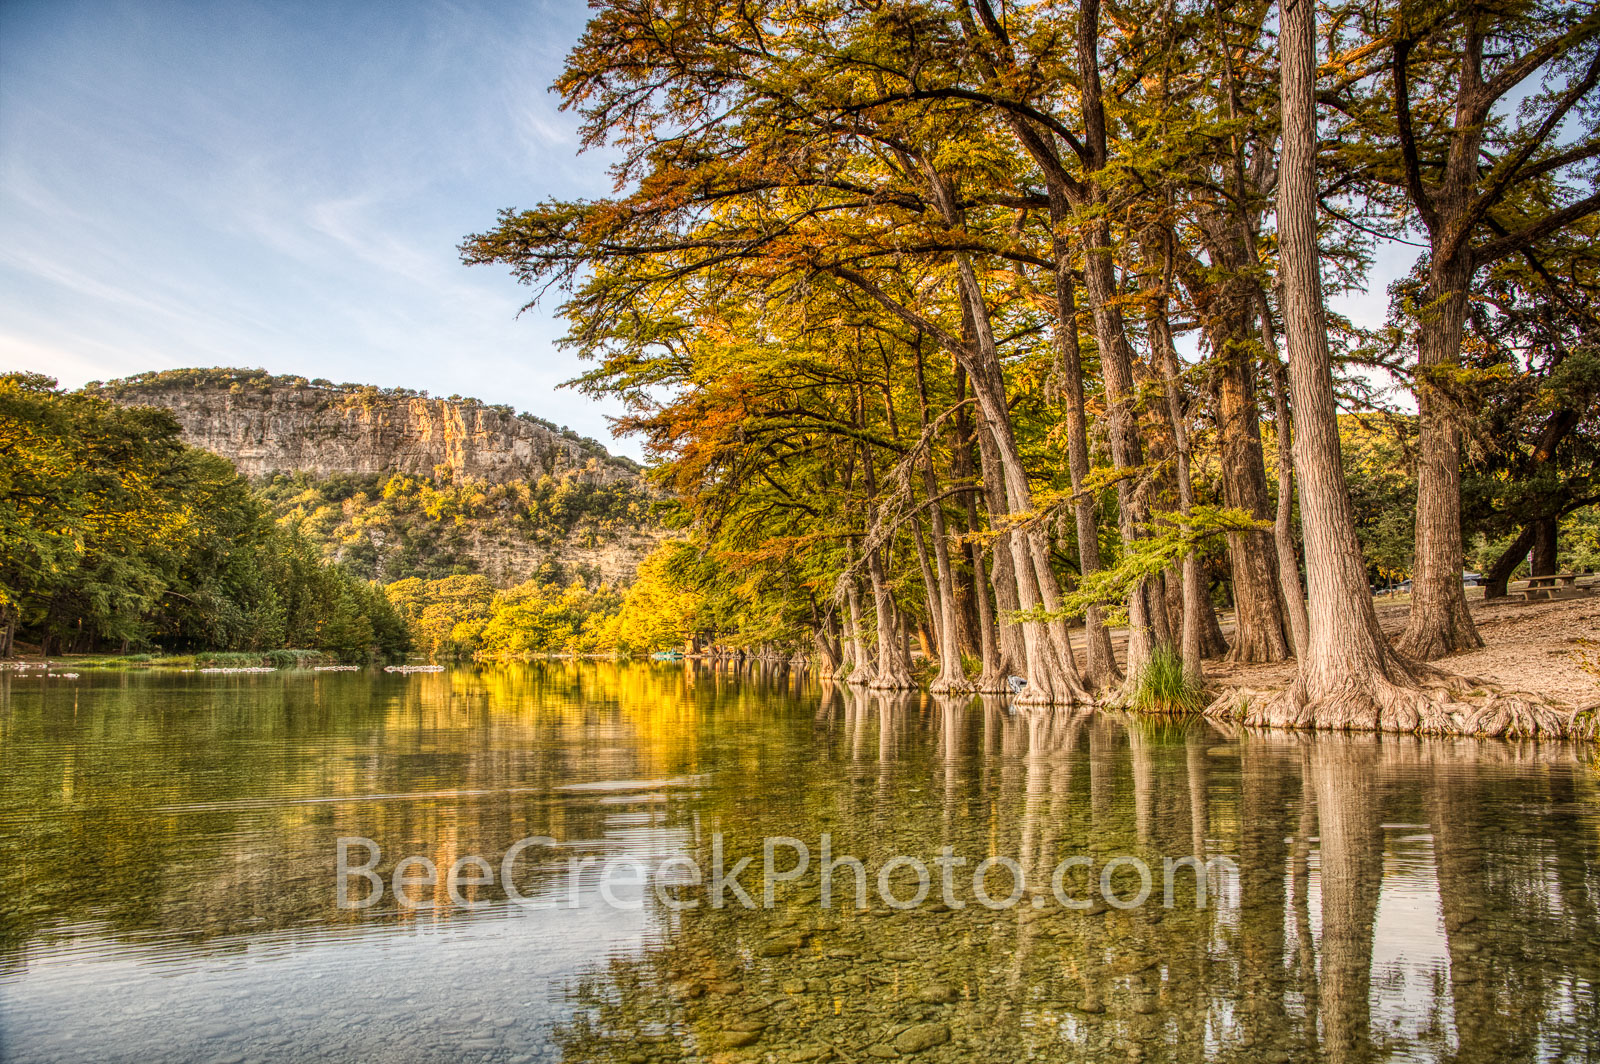 Serenity Along the Frio  - We capture this on one of our many trip to the Texas hill country this year to try and capture the...